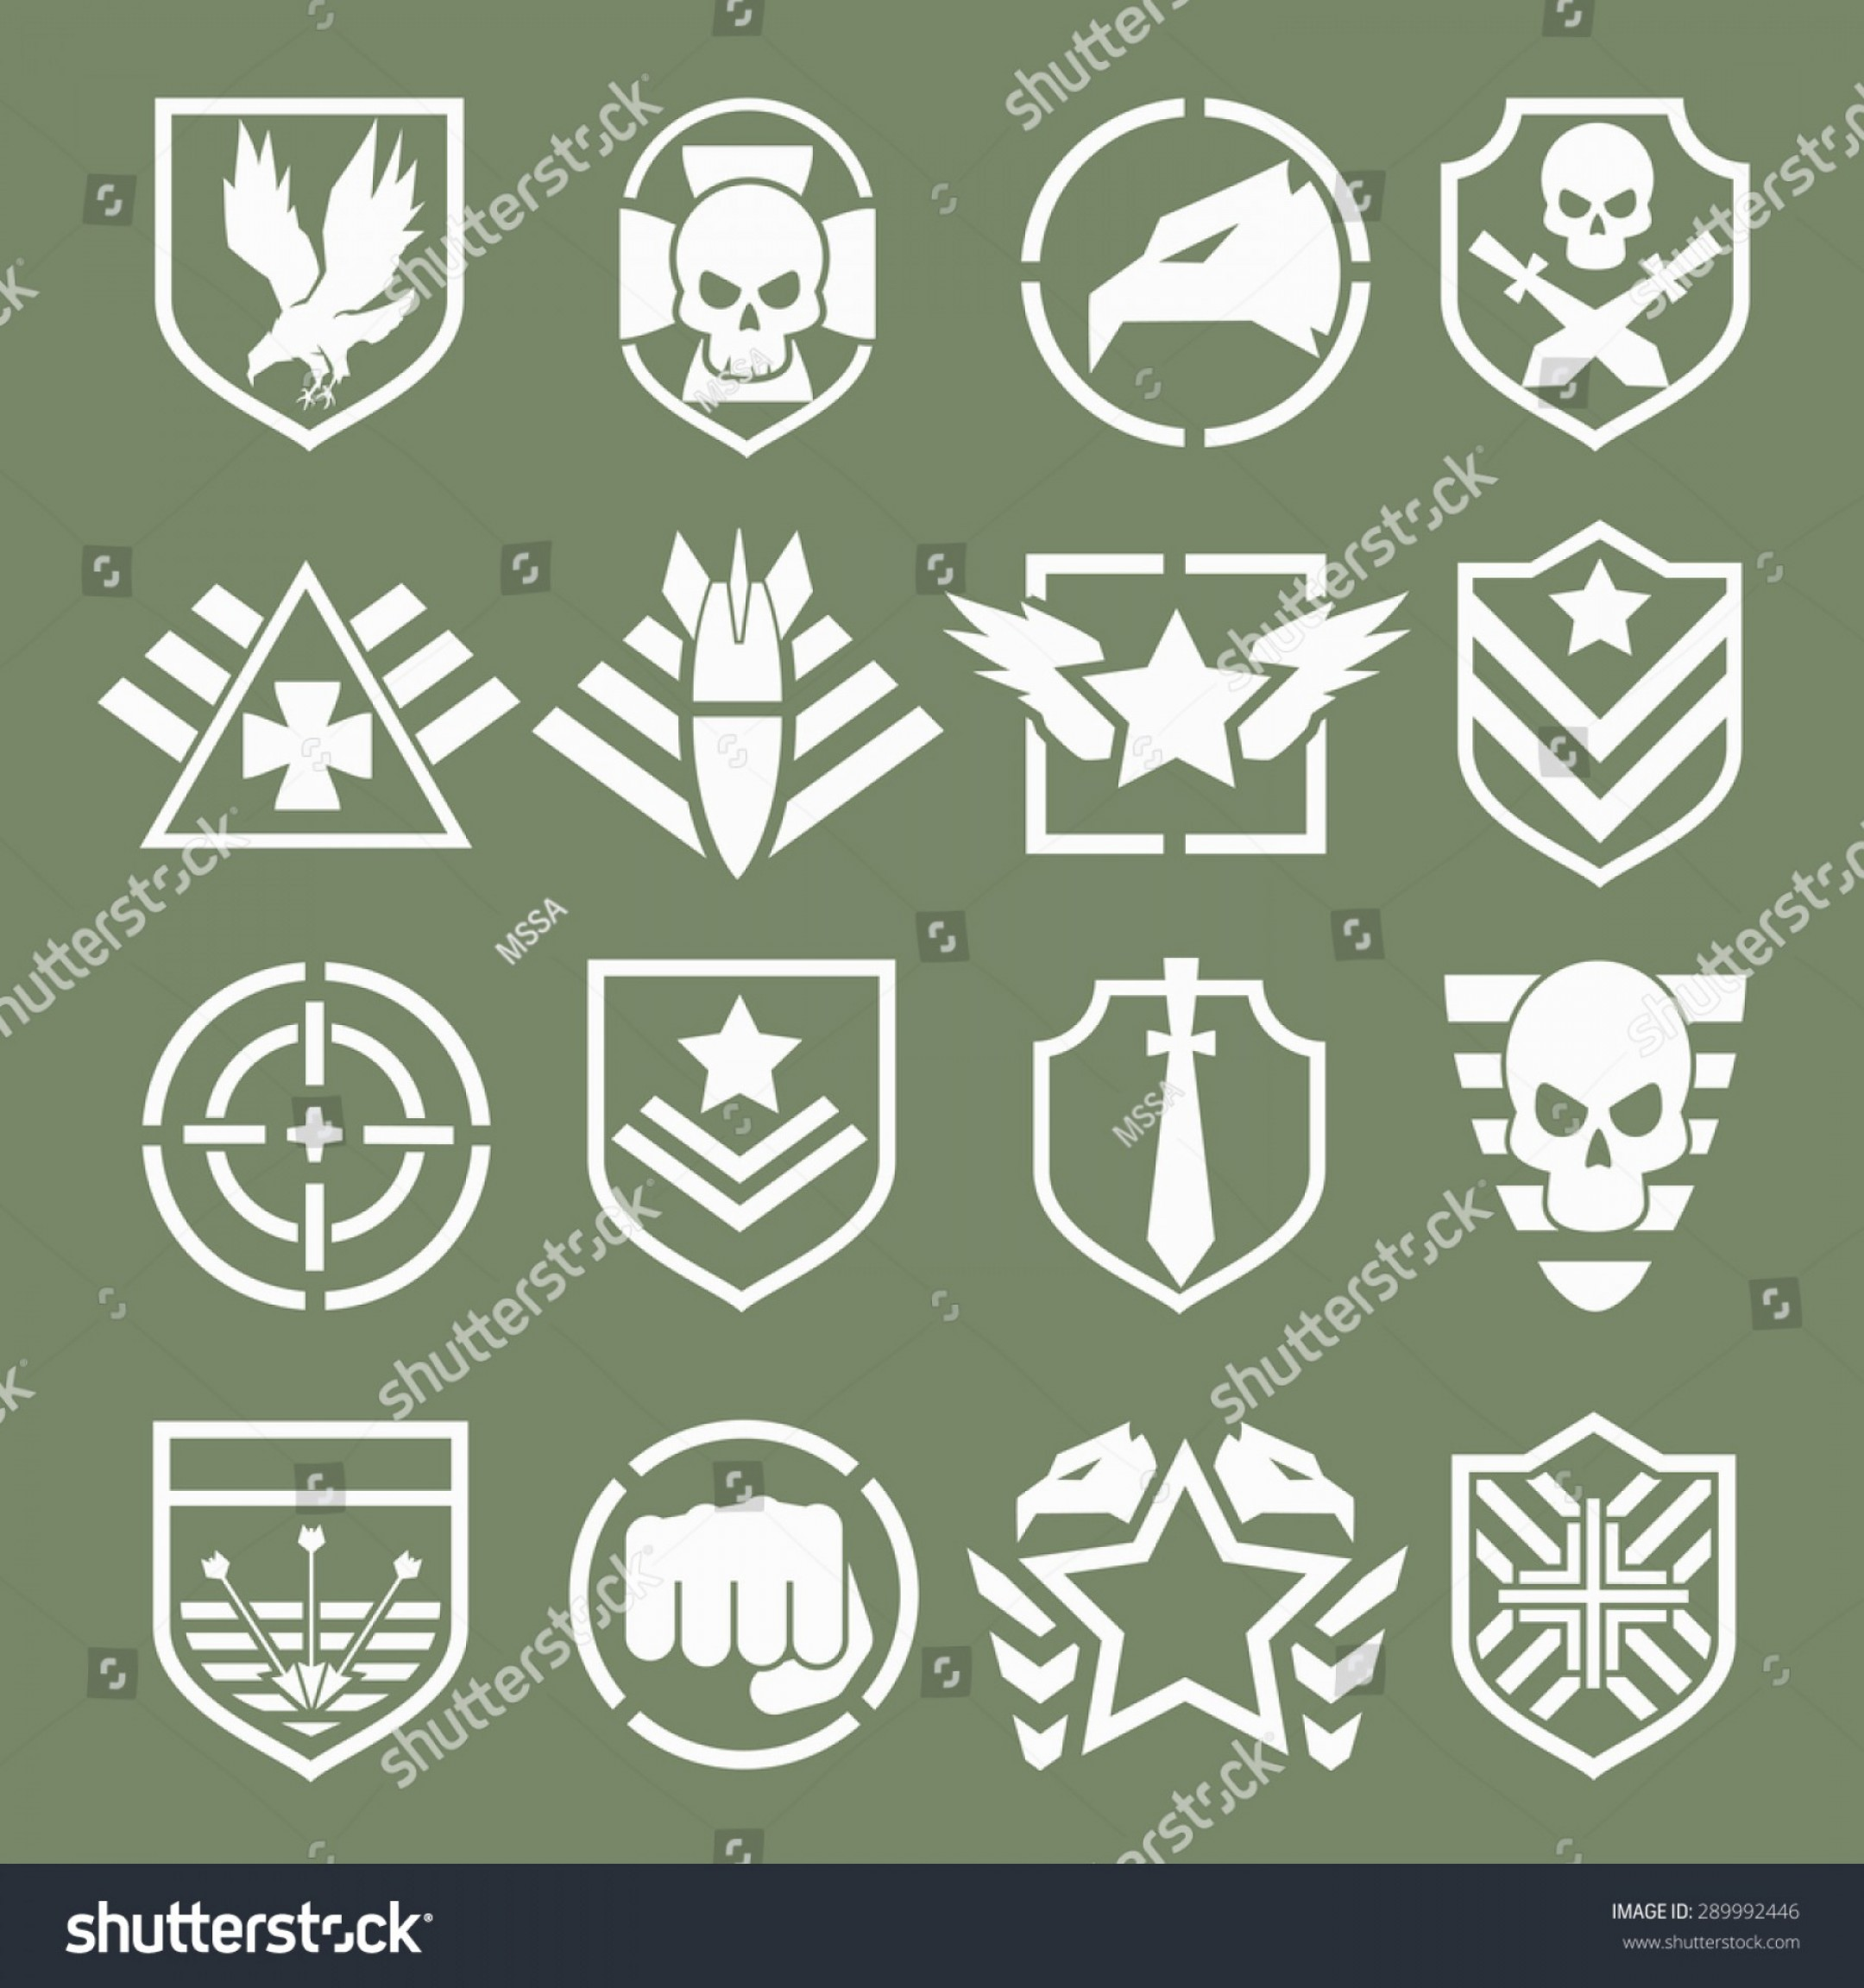 Us Special Forces Vector Files: Military Logos Special Forces Set Army